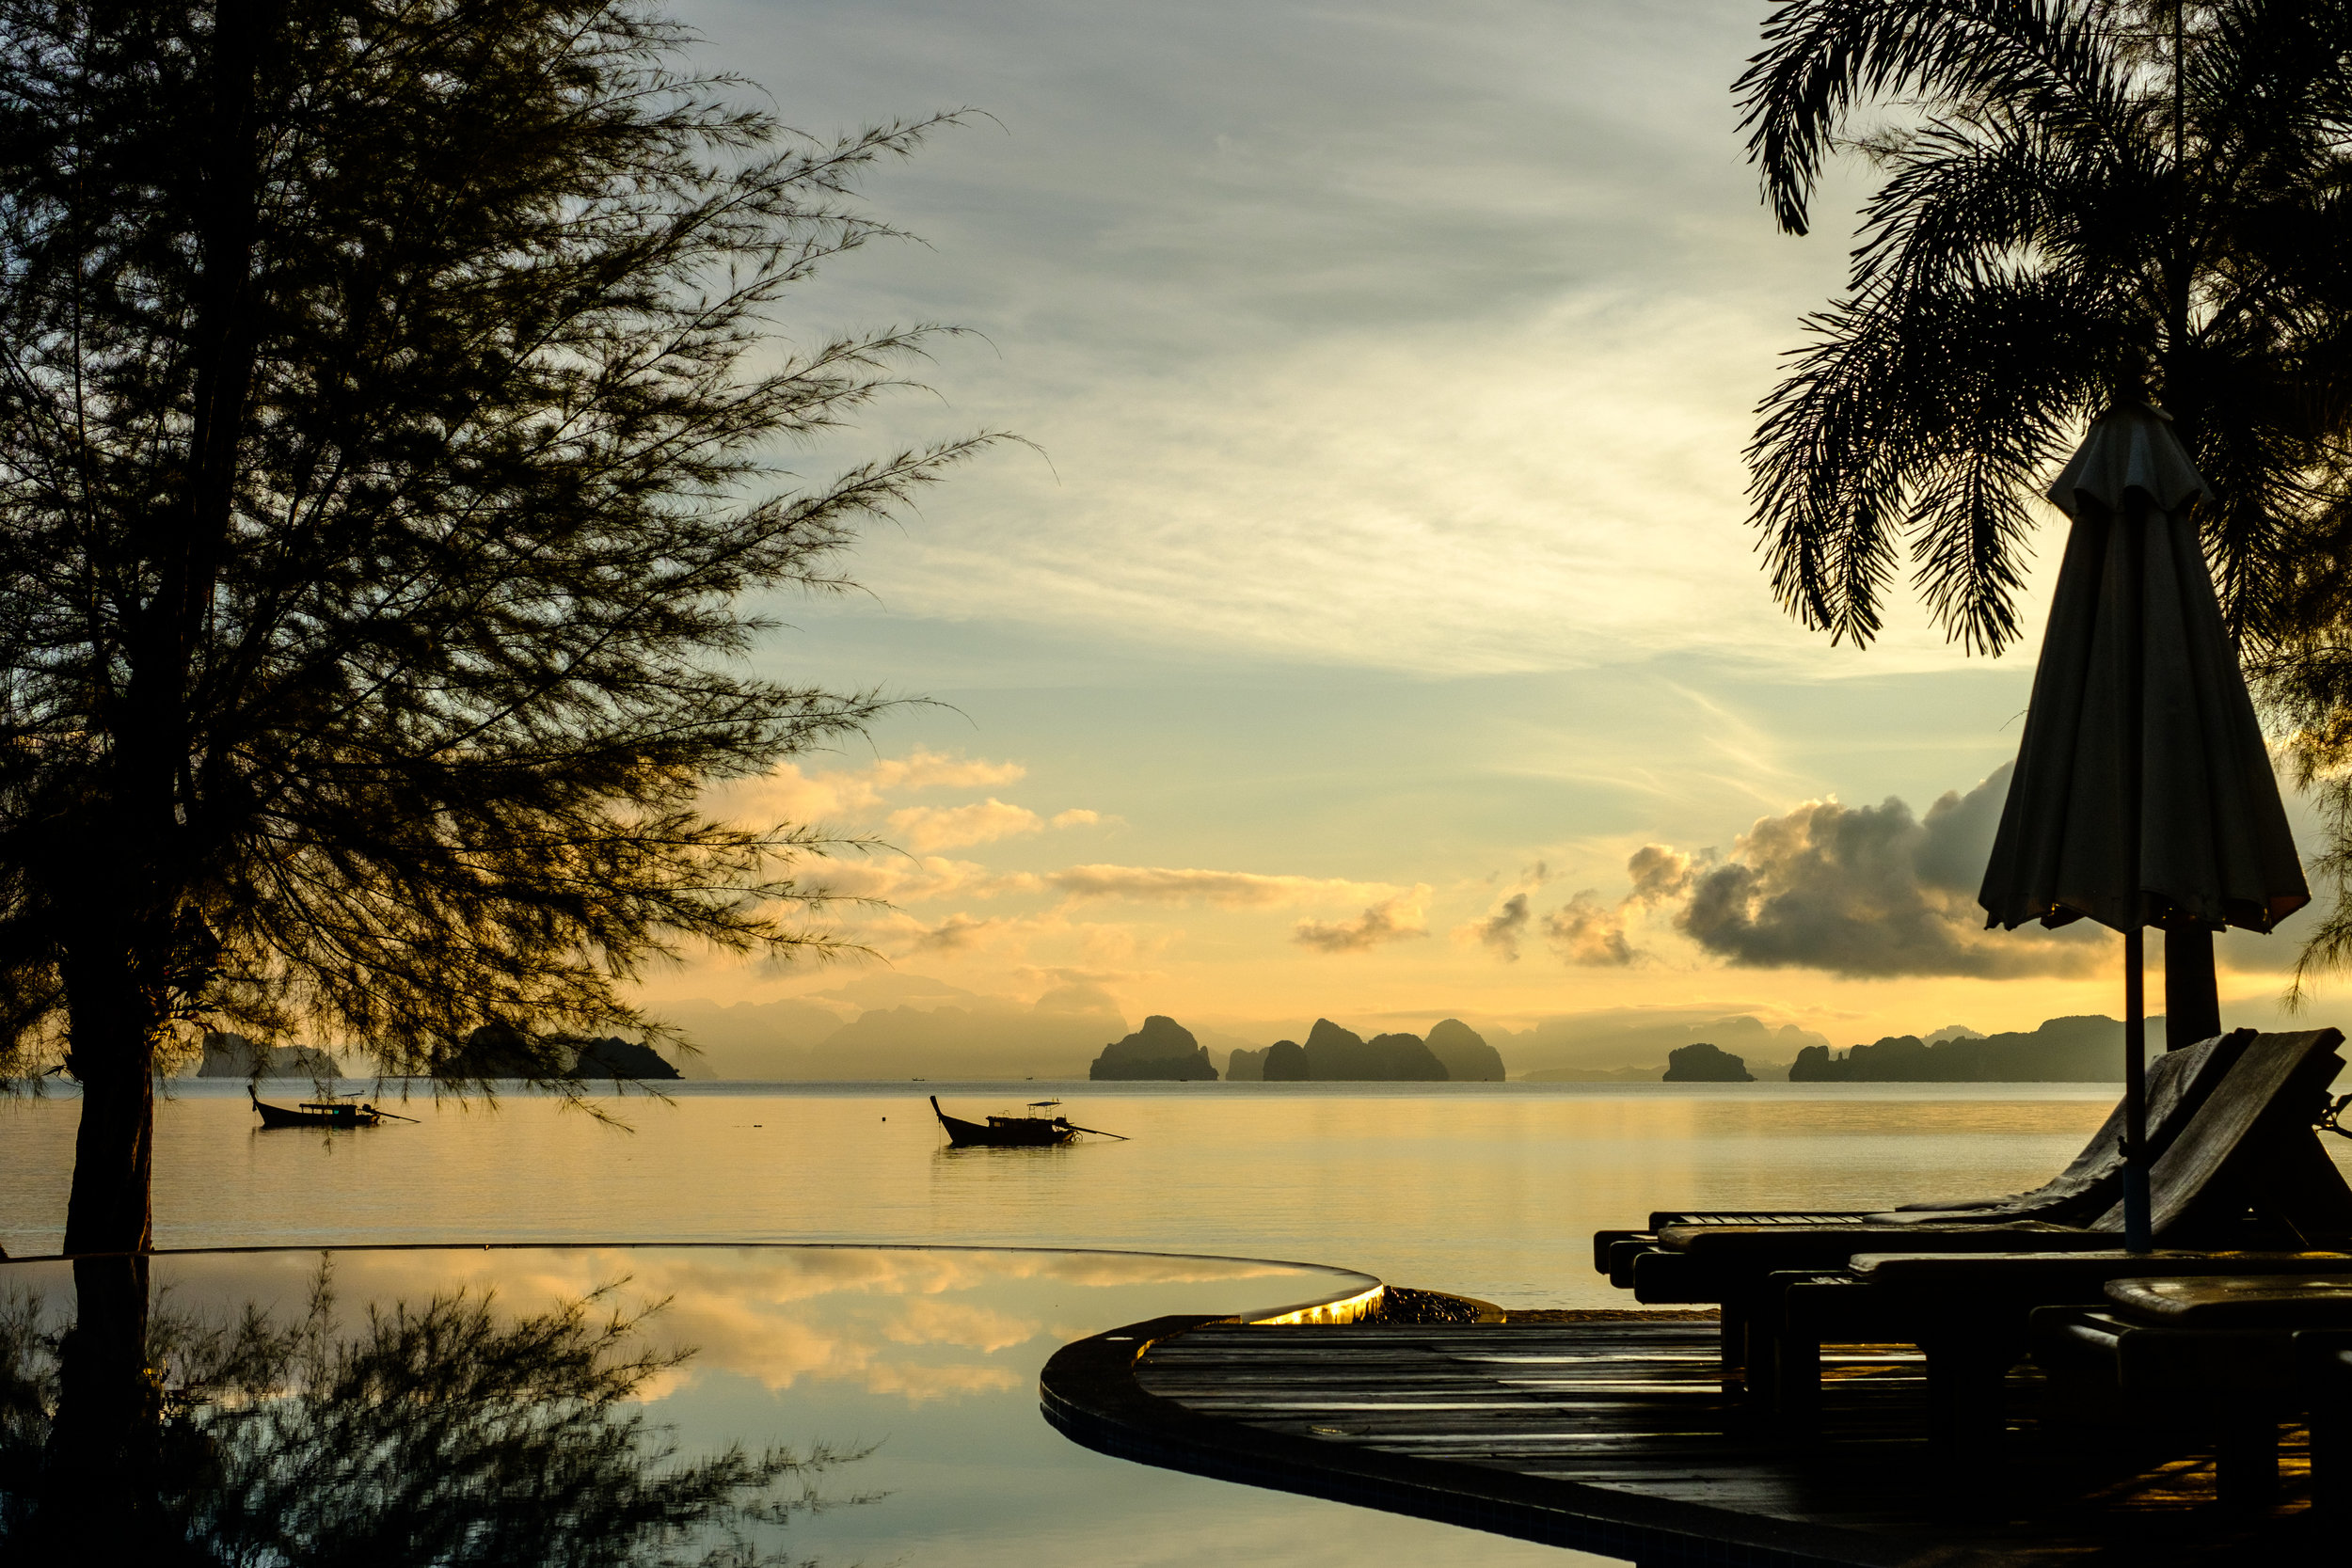 Imagine waking up to this view a the Thiwson Beach Resort on the island of Koh Yao Yai in Thailand